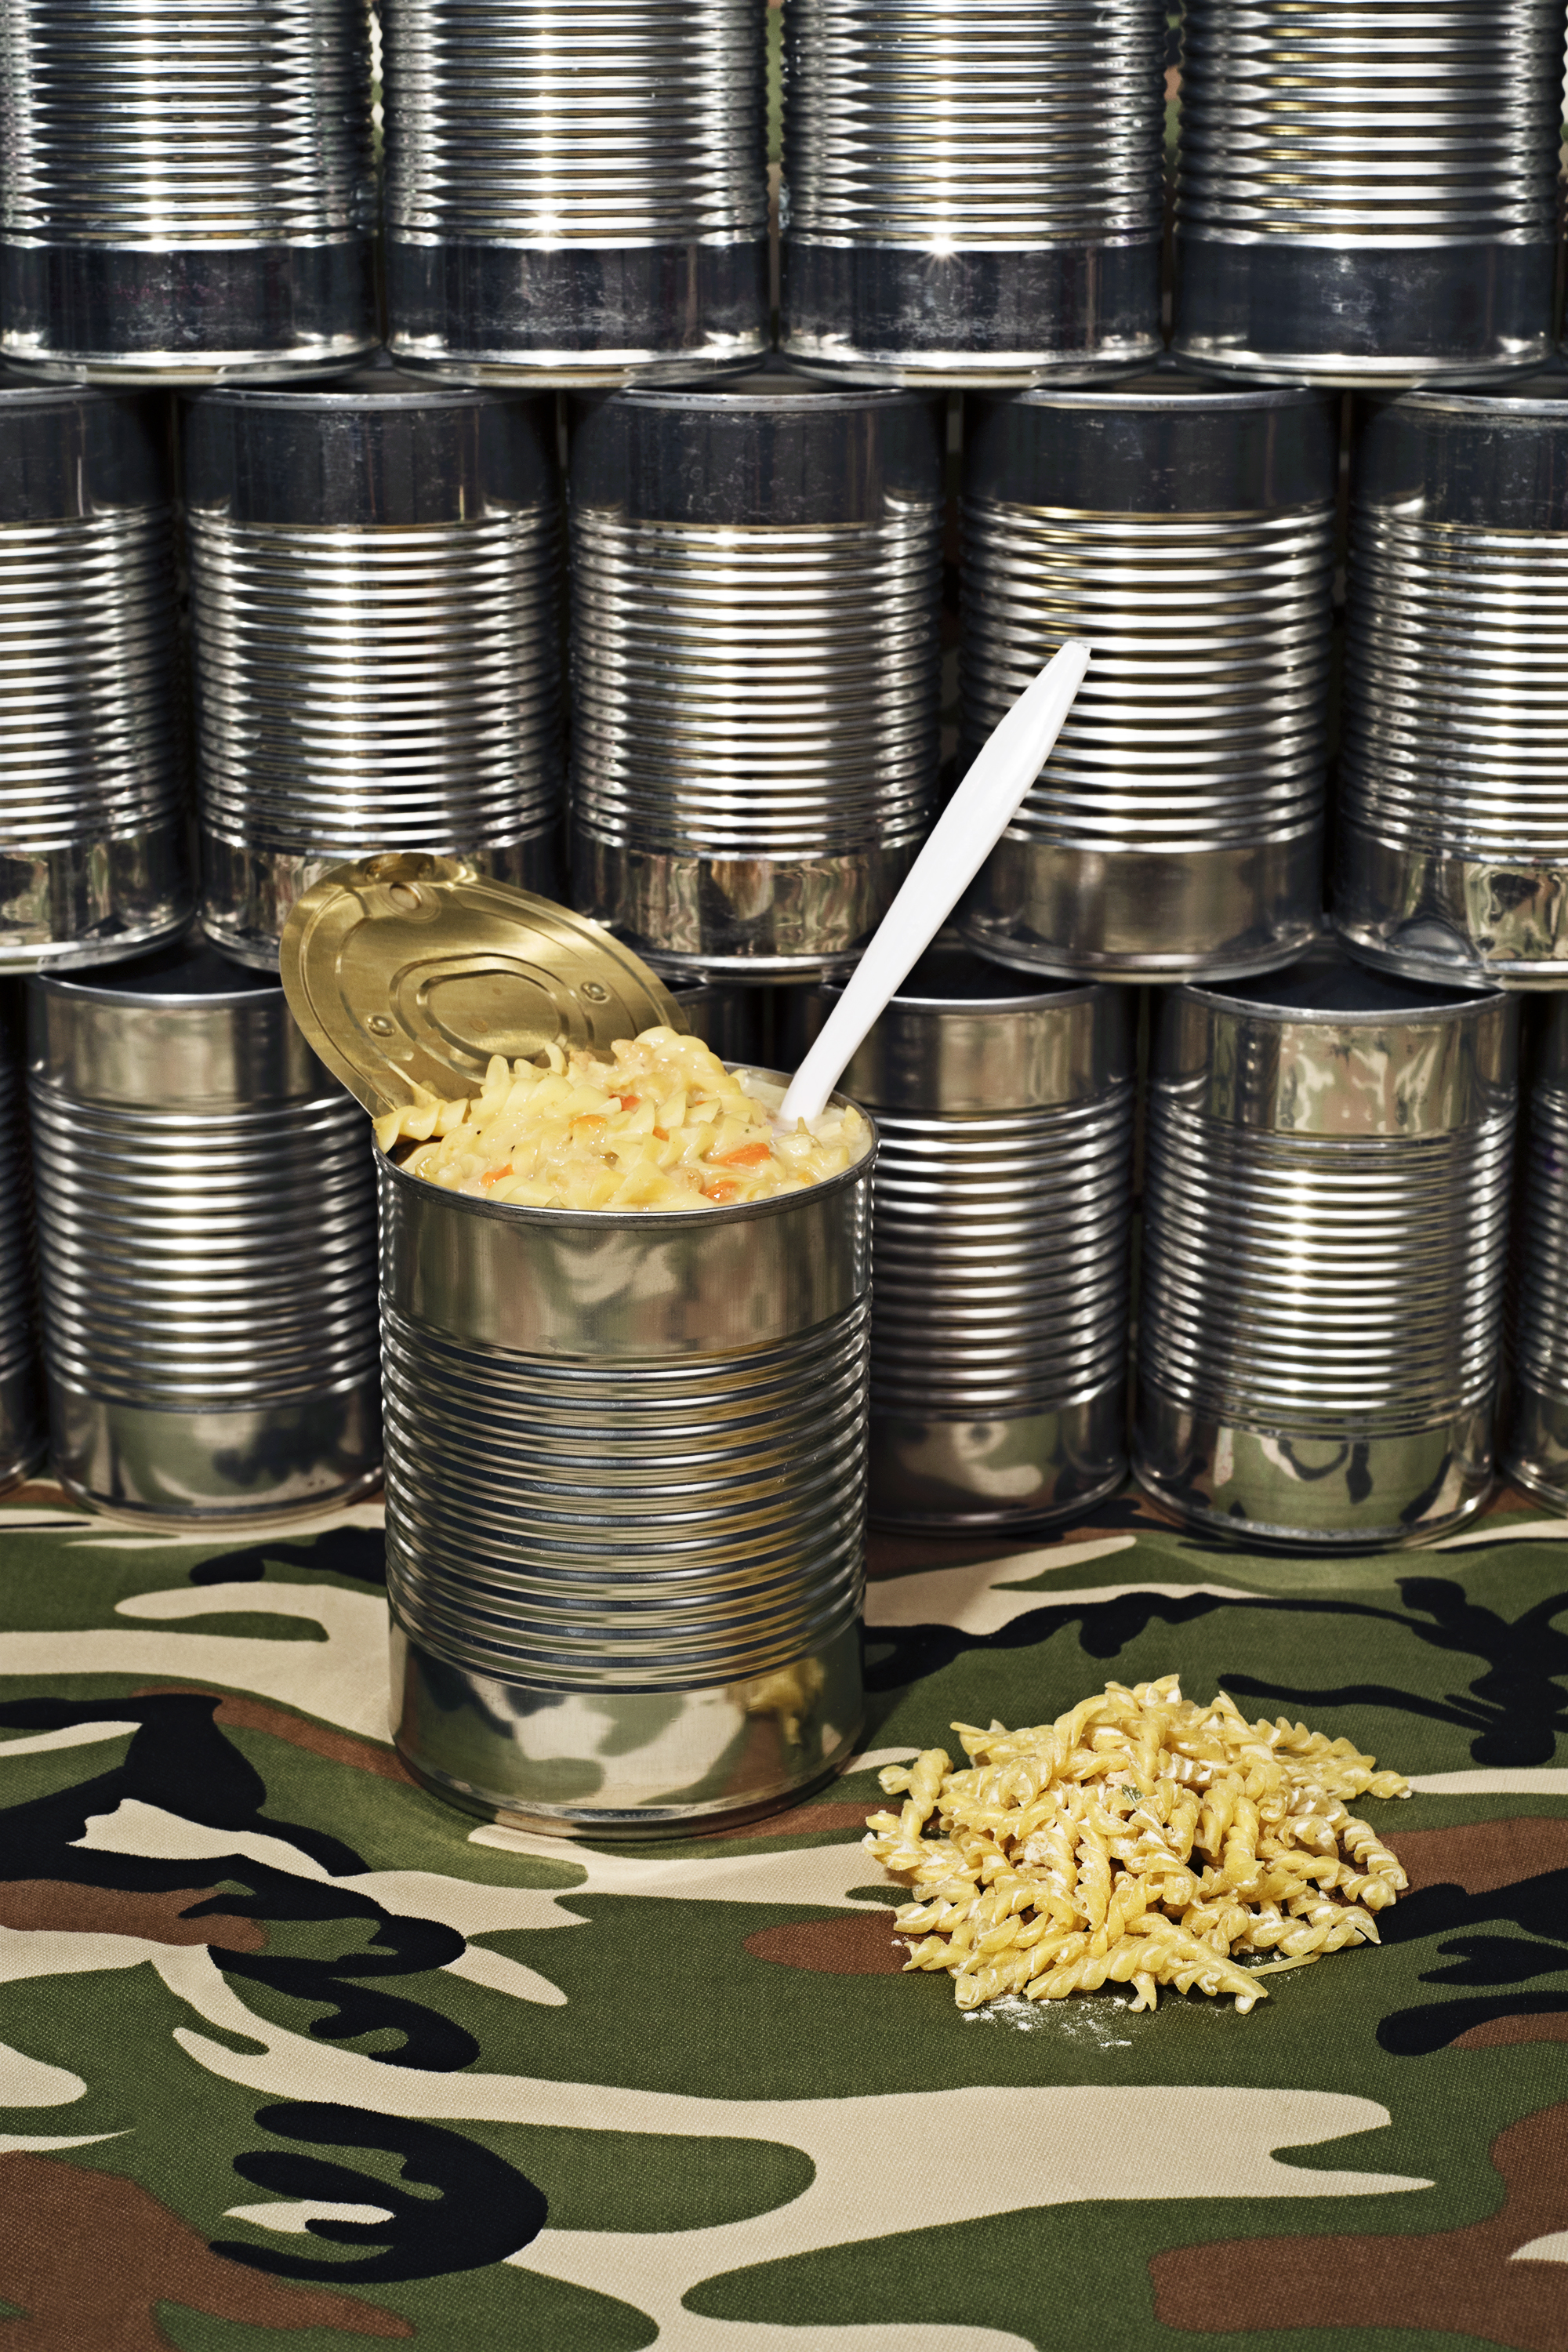 I Lived Exclusively Off Doomsday Prepper Food For A Week